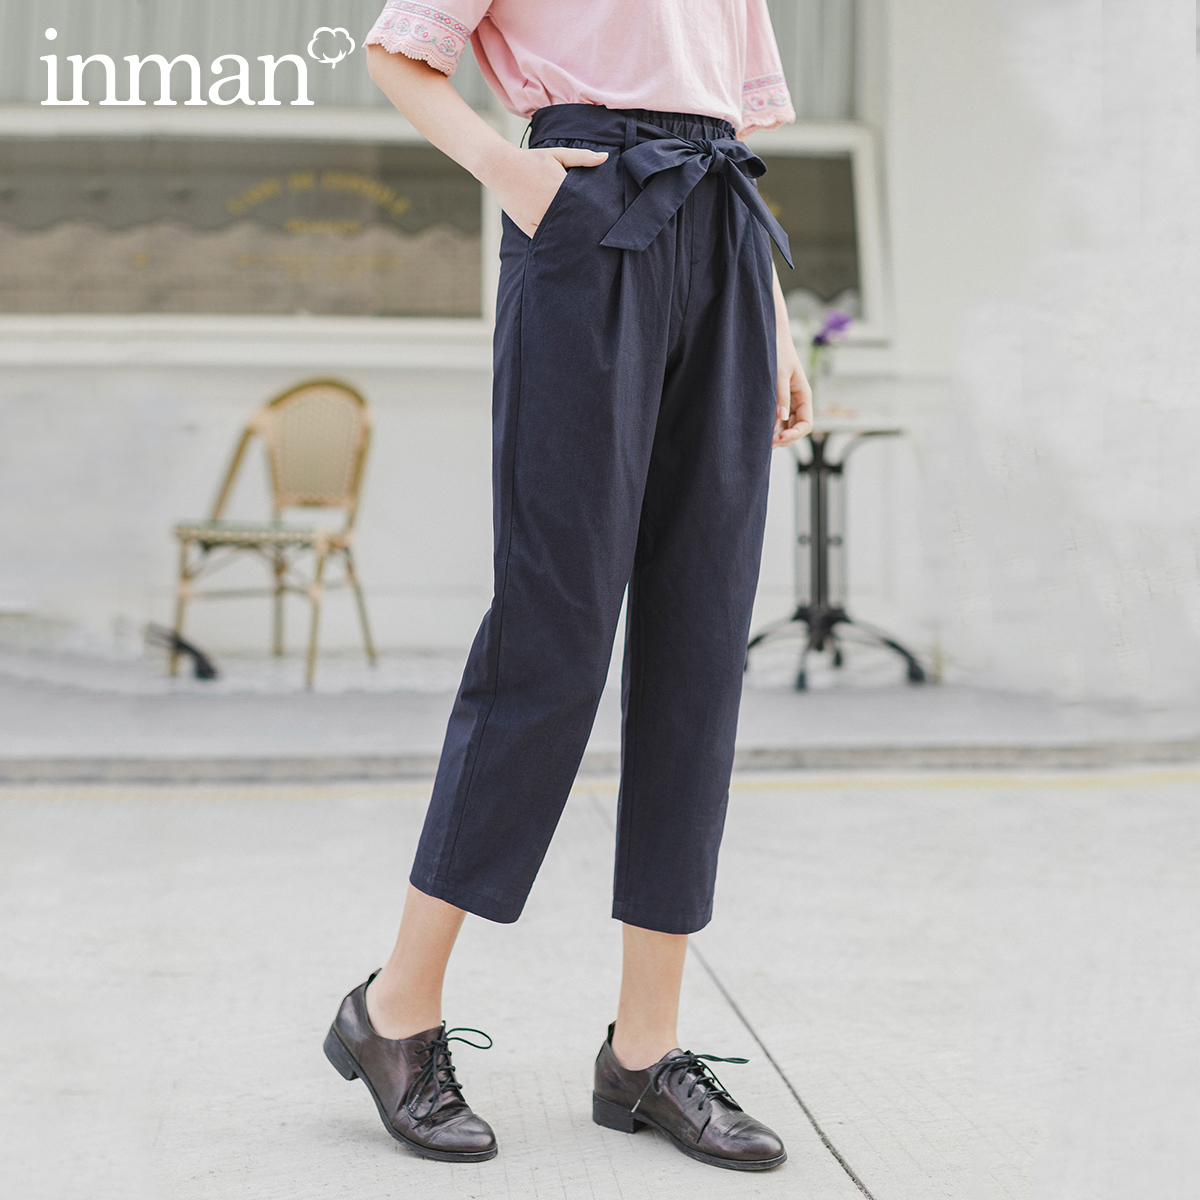 INMAN 2020 Spring New Arrival Cotton Bowknot Lace-up All-match Slimmed Loose Leisure Eight Out Of Ten Pant